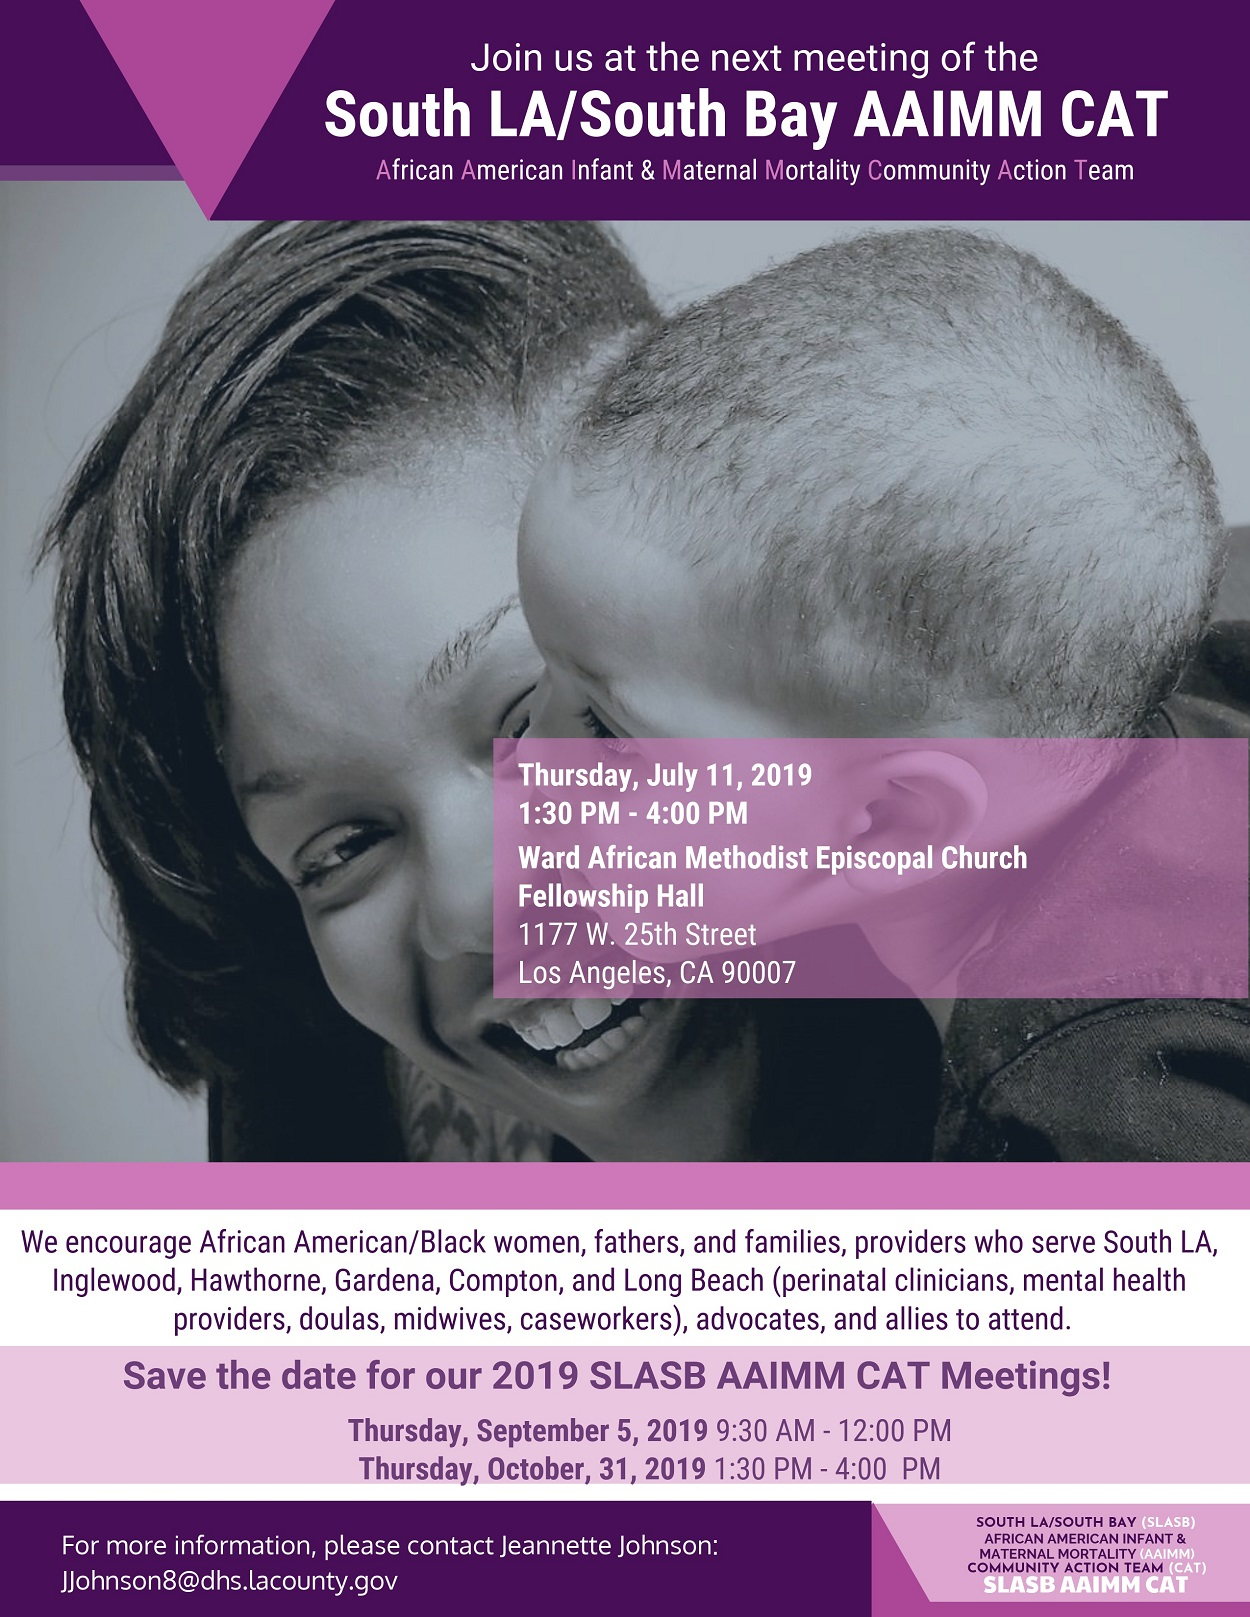 South LA/South Bay AAIMM CAT Meeting - Black Infants and